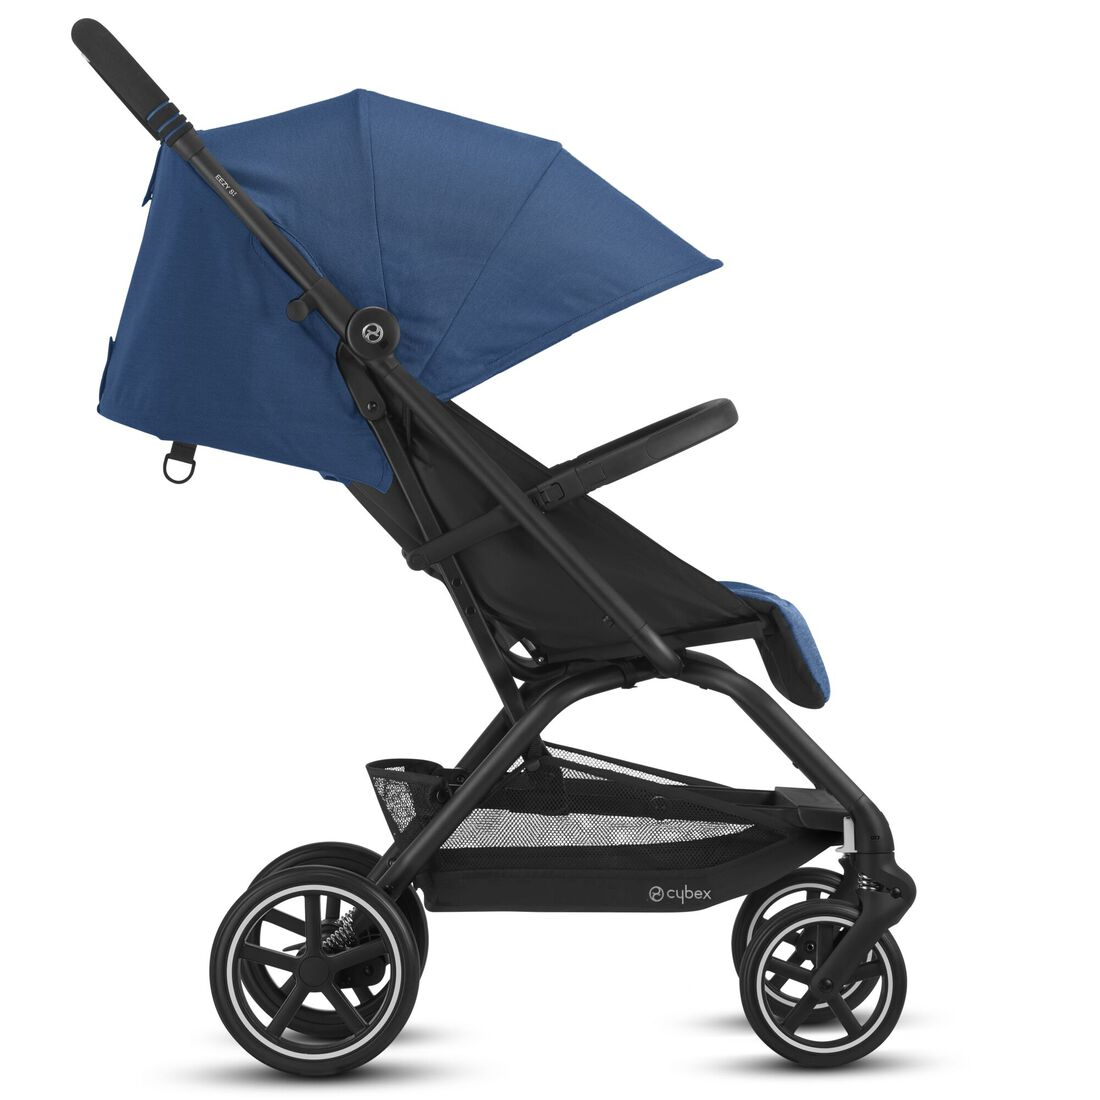 CYBEX Eezy S+2 - Navy Blue in Navy Blue large image number 2